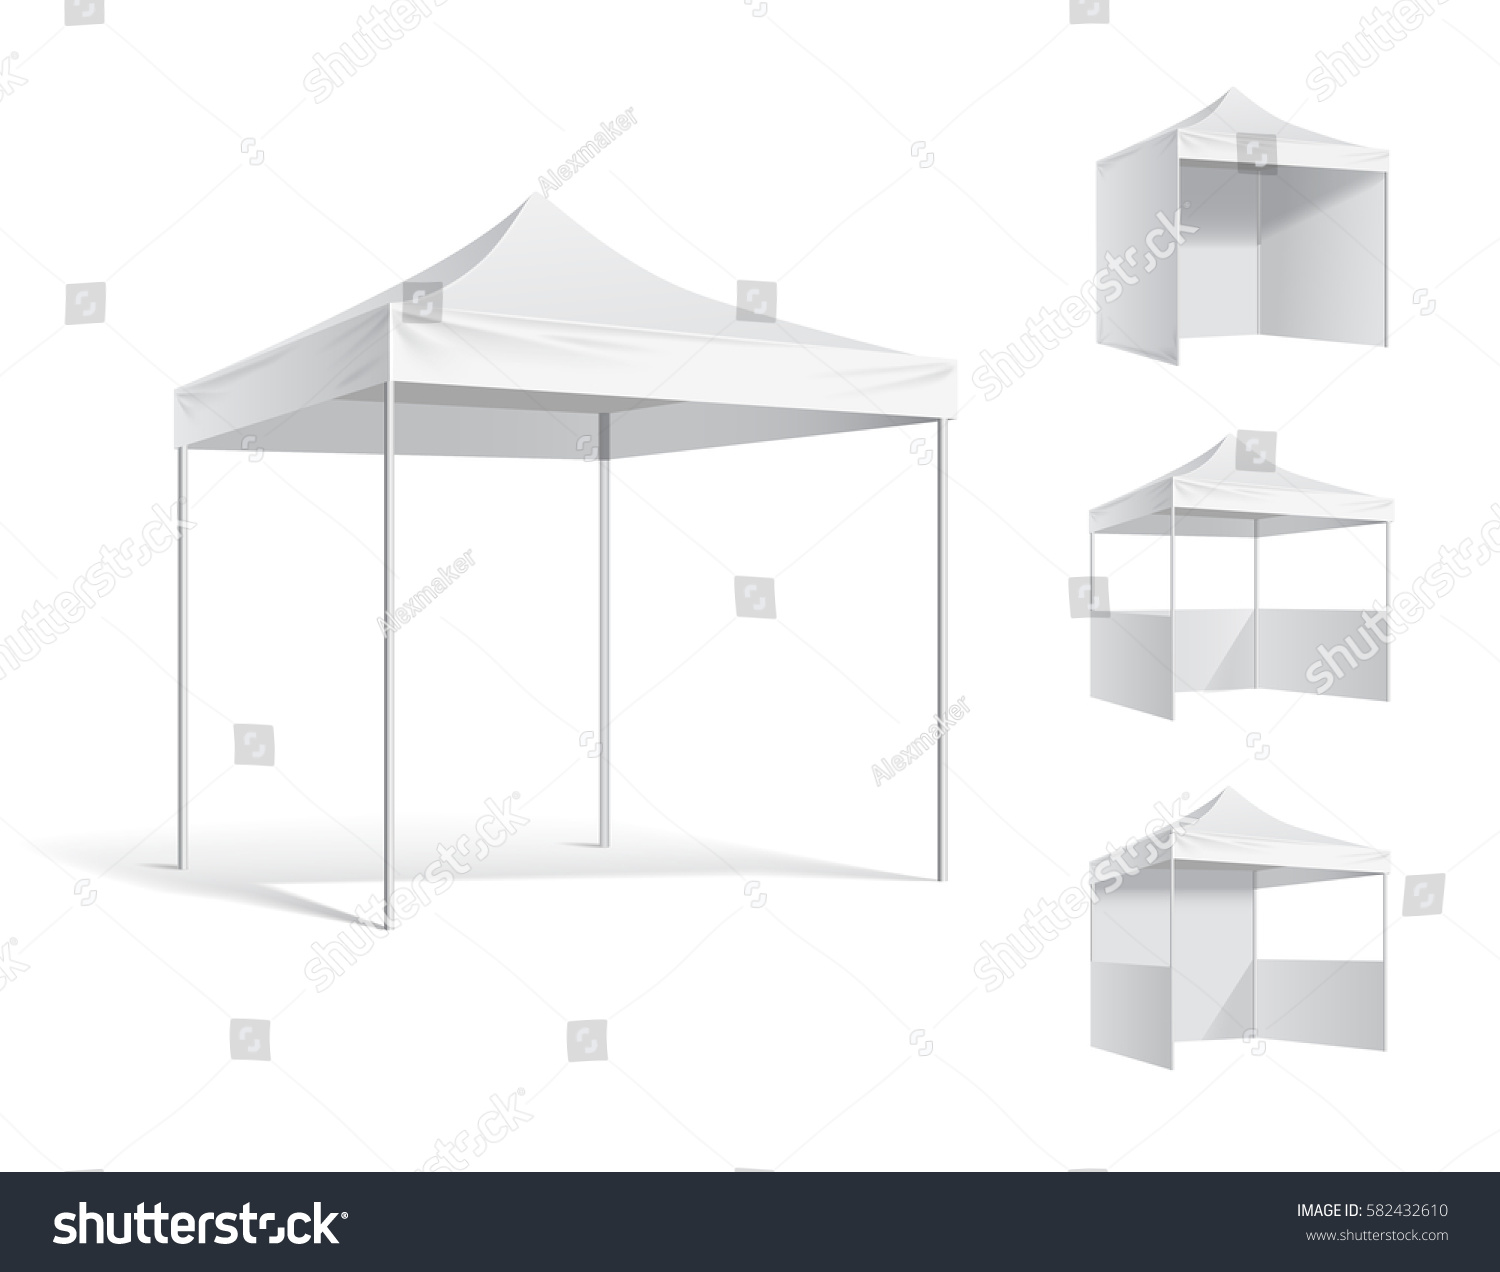 advertising outdoor event trade show pop up stock vector royalty